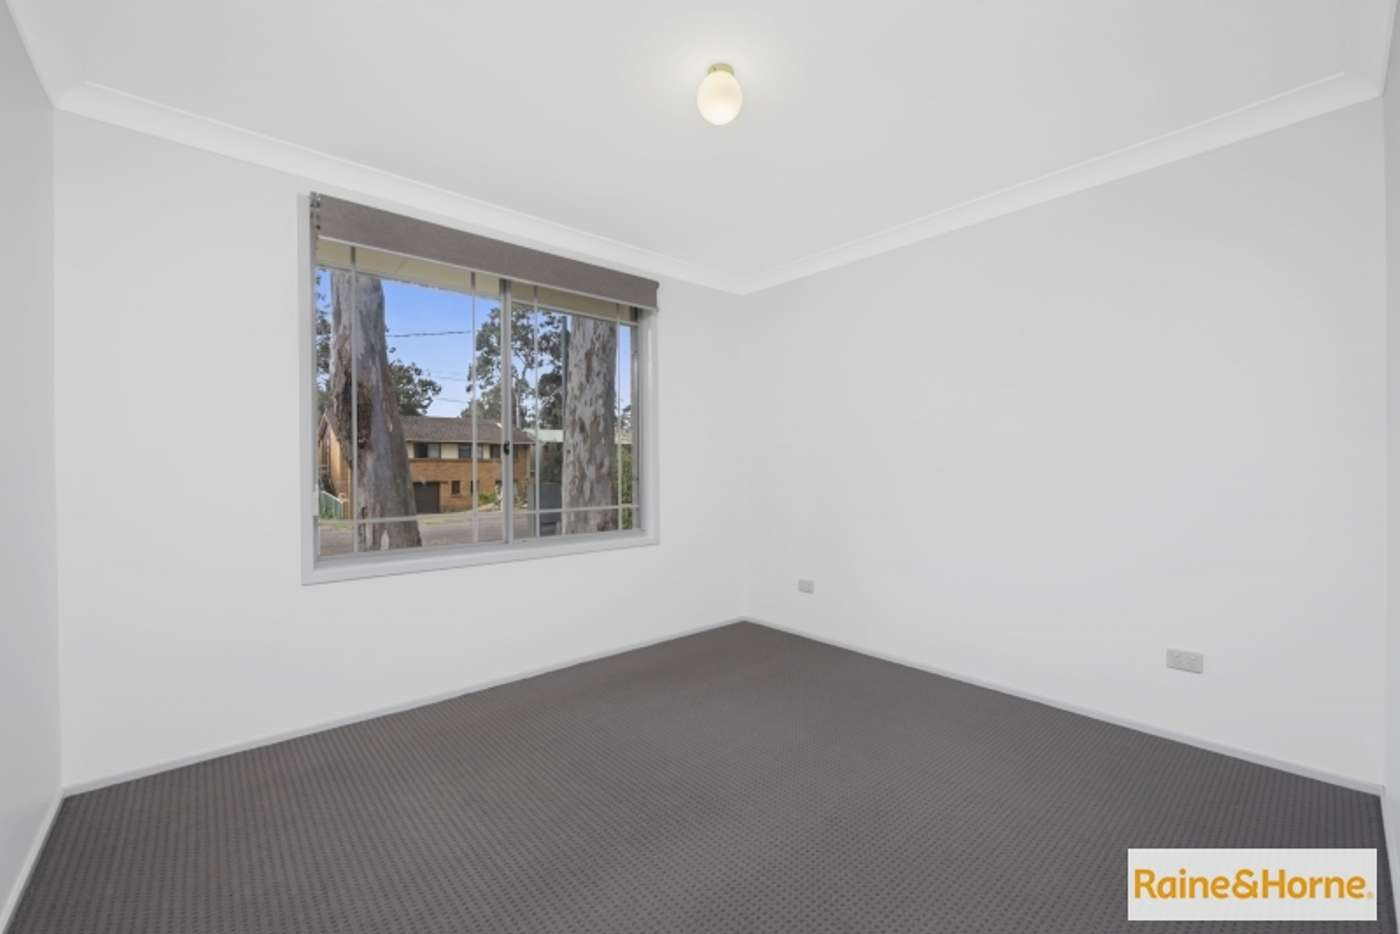 Sixth view of Homely house listing, 8 Lakeshore Avenue, Chain Valley Bay NSW 2259